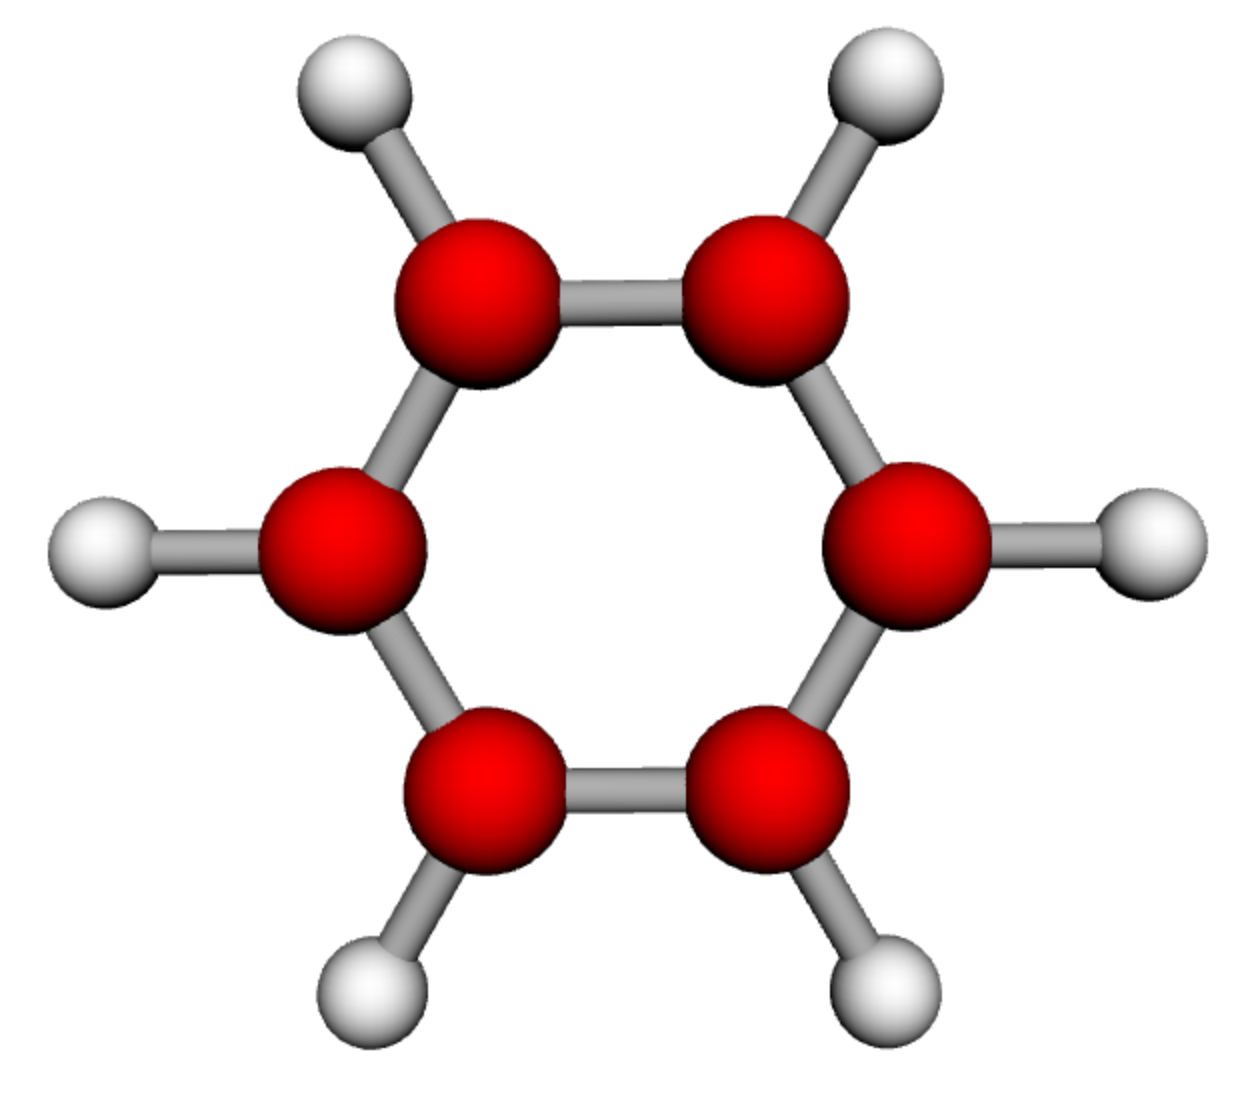 Benzene is an organic chemical compound with the chemical formula C 6 H 6 The benzene molecule is composed of six carbon atoms joined in a ring with one hydrogen